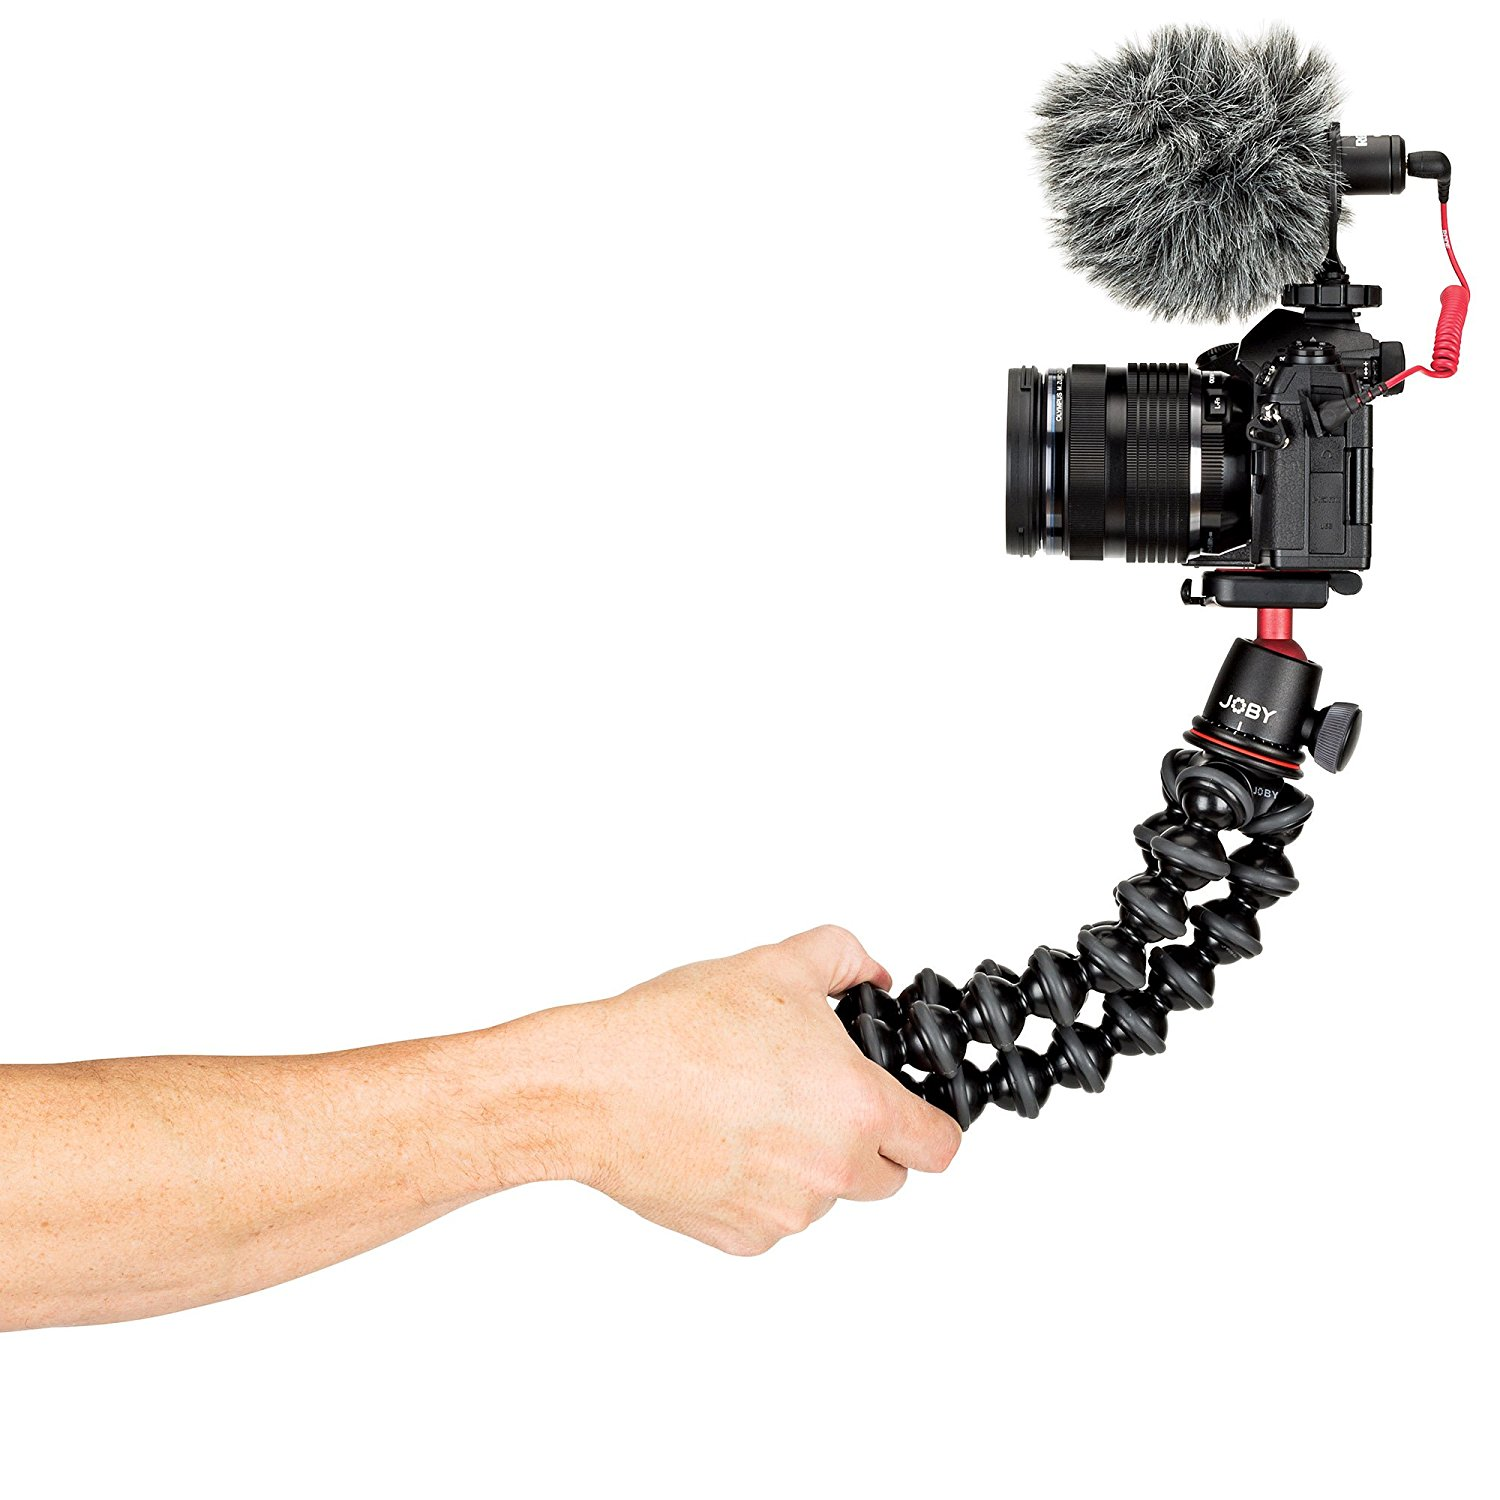 Gorillapod 3K - If a tripod could be famous, this is it.